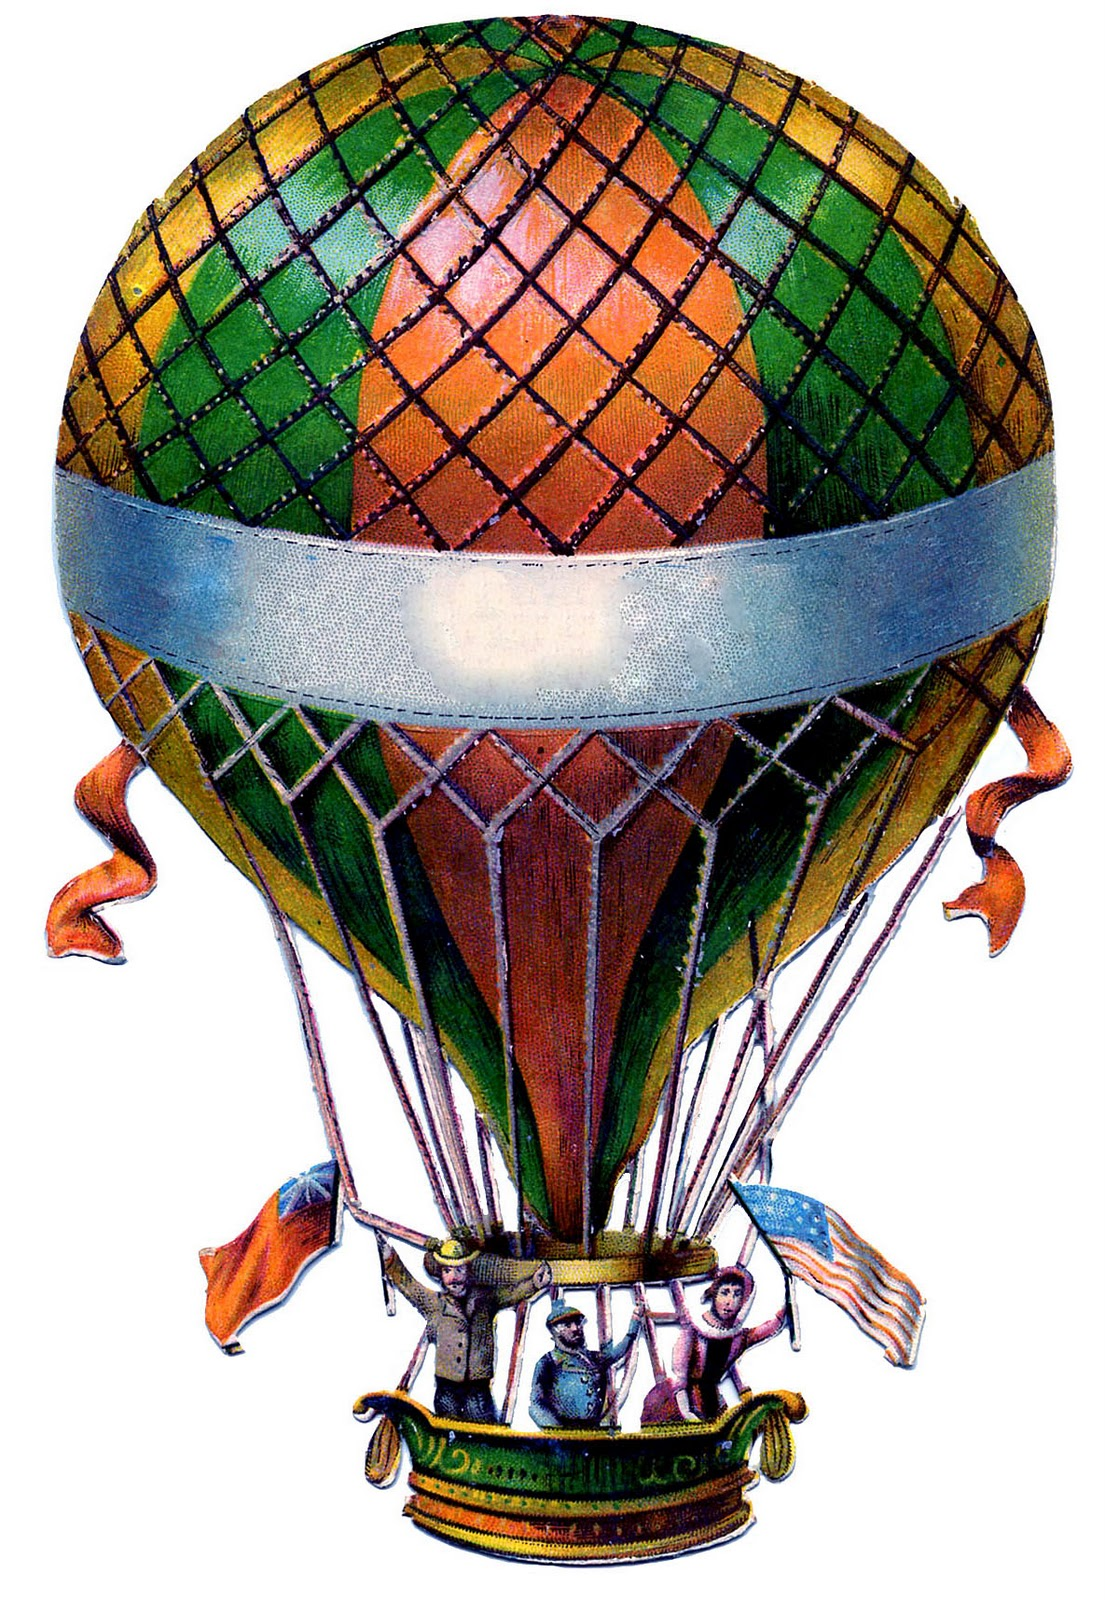 1000+ images about Hot Air Balloons, Dirigibles, Blimps, Zeppelins.